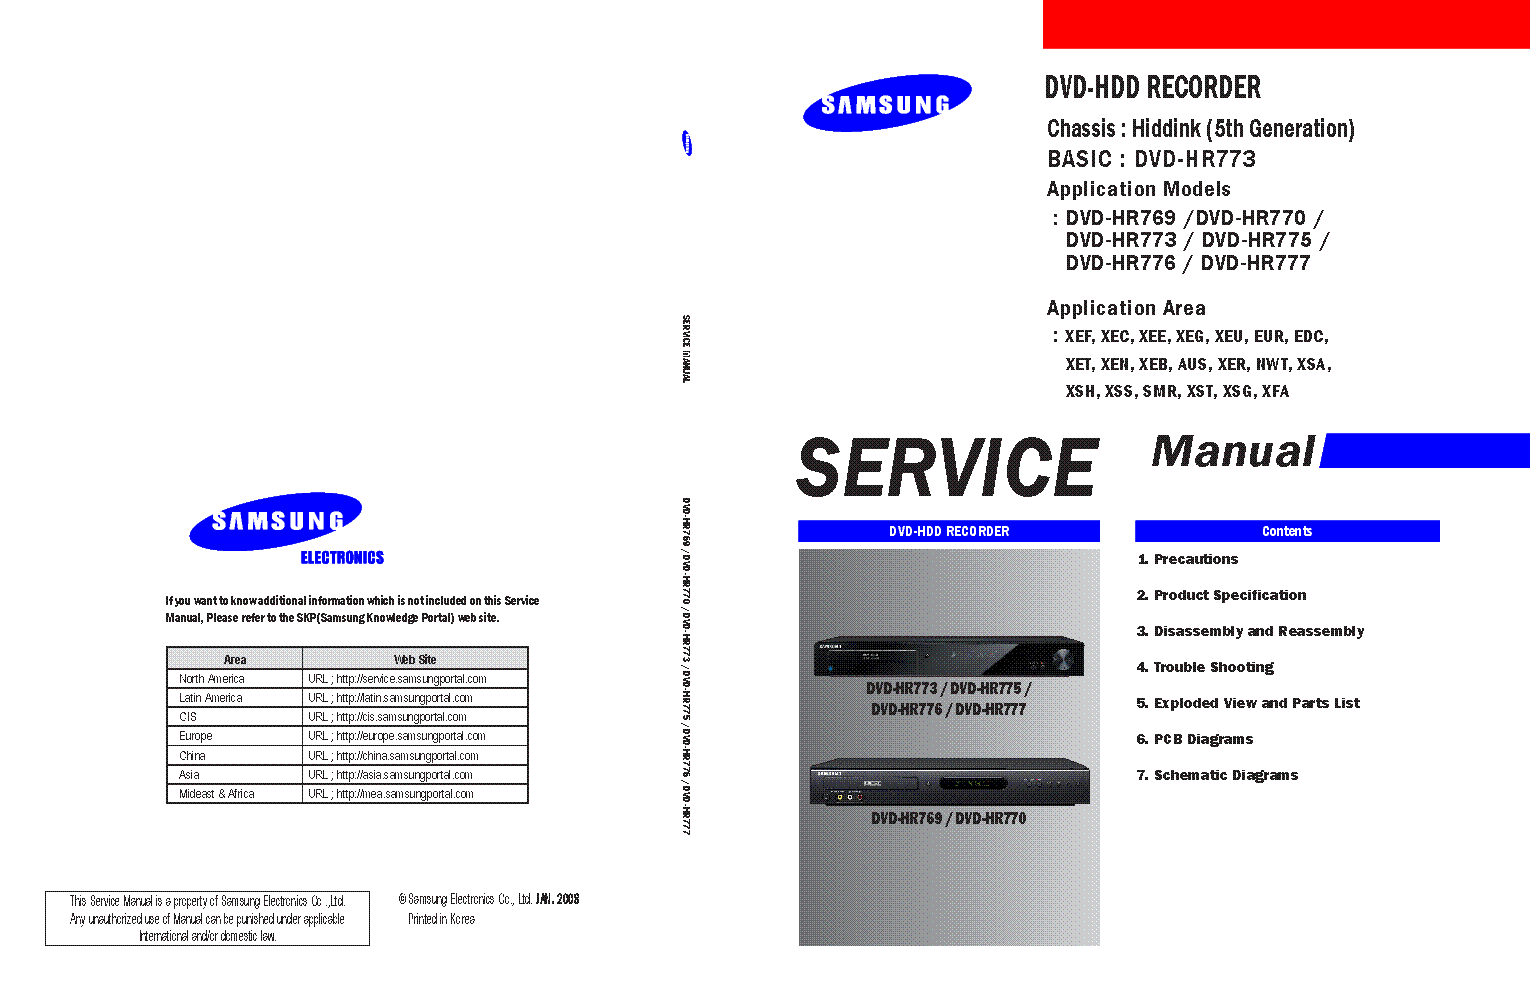 samsung dvd hr773 dvd hdd recorder service manual download